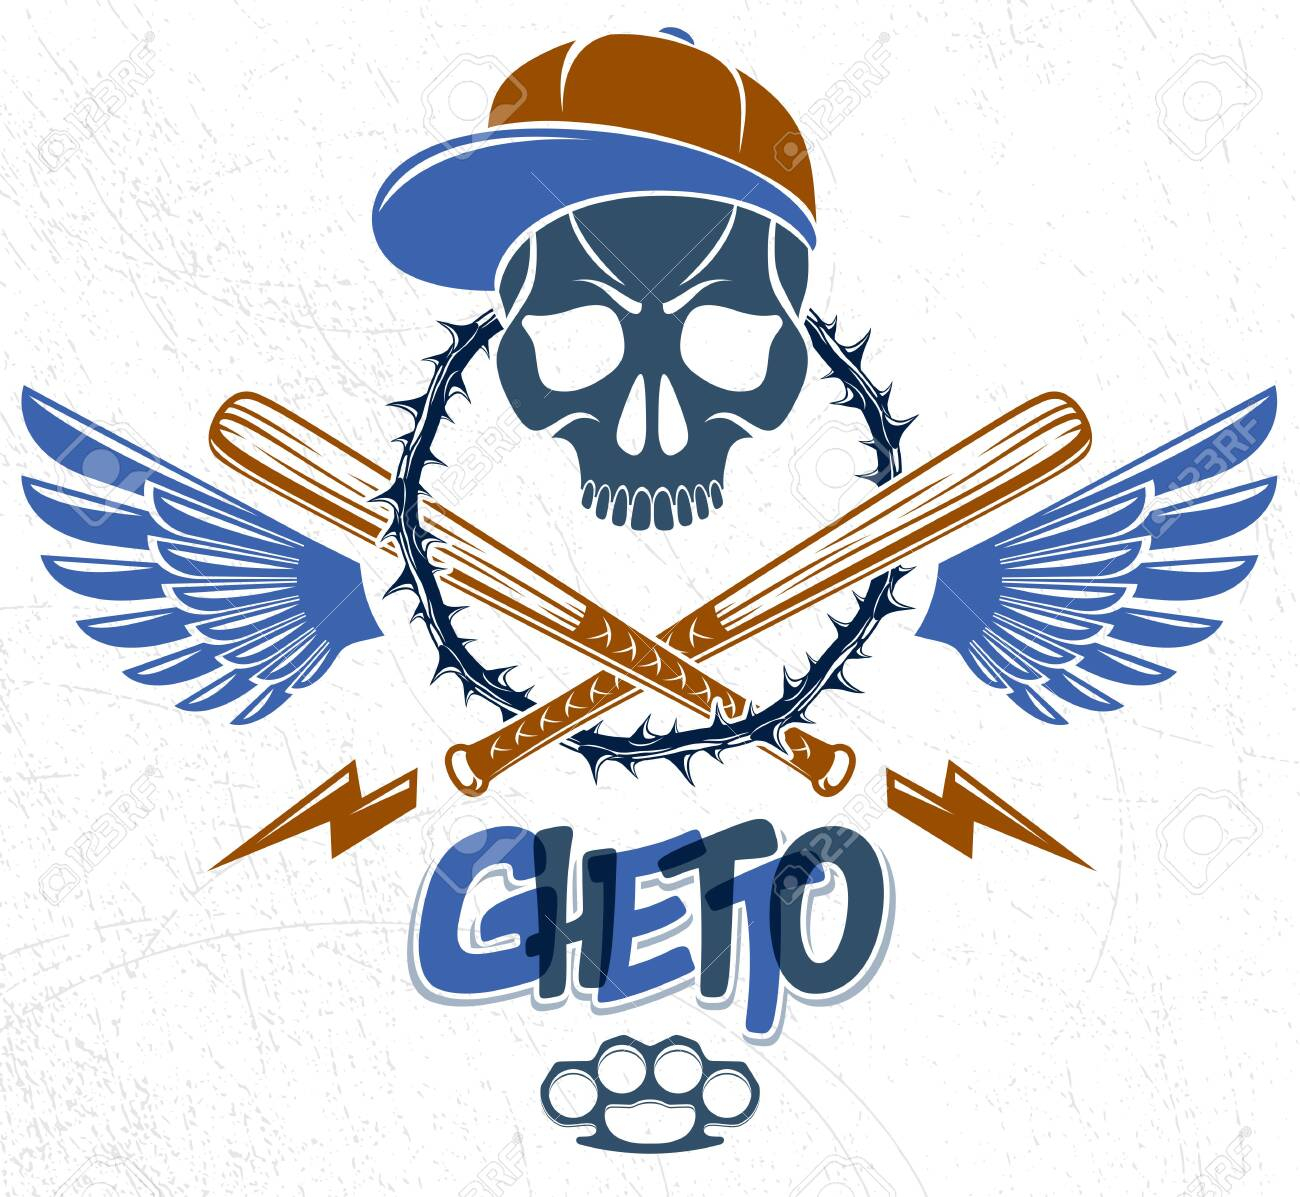 Gangster emblem design or tattoo with aggressive skull baseball bats and other weapons and design elements, vector, criminal ghetto vintage style, gangster anarchy or mafia theme. - 129395238